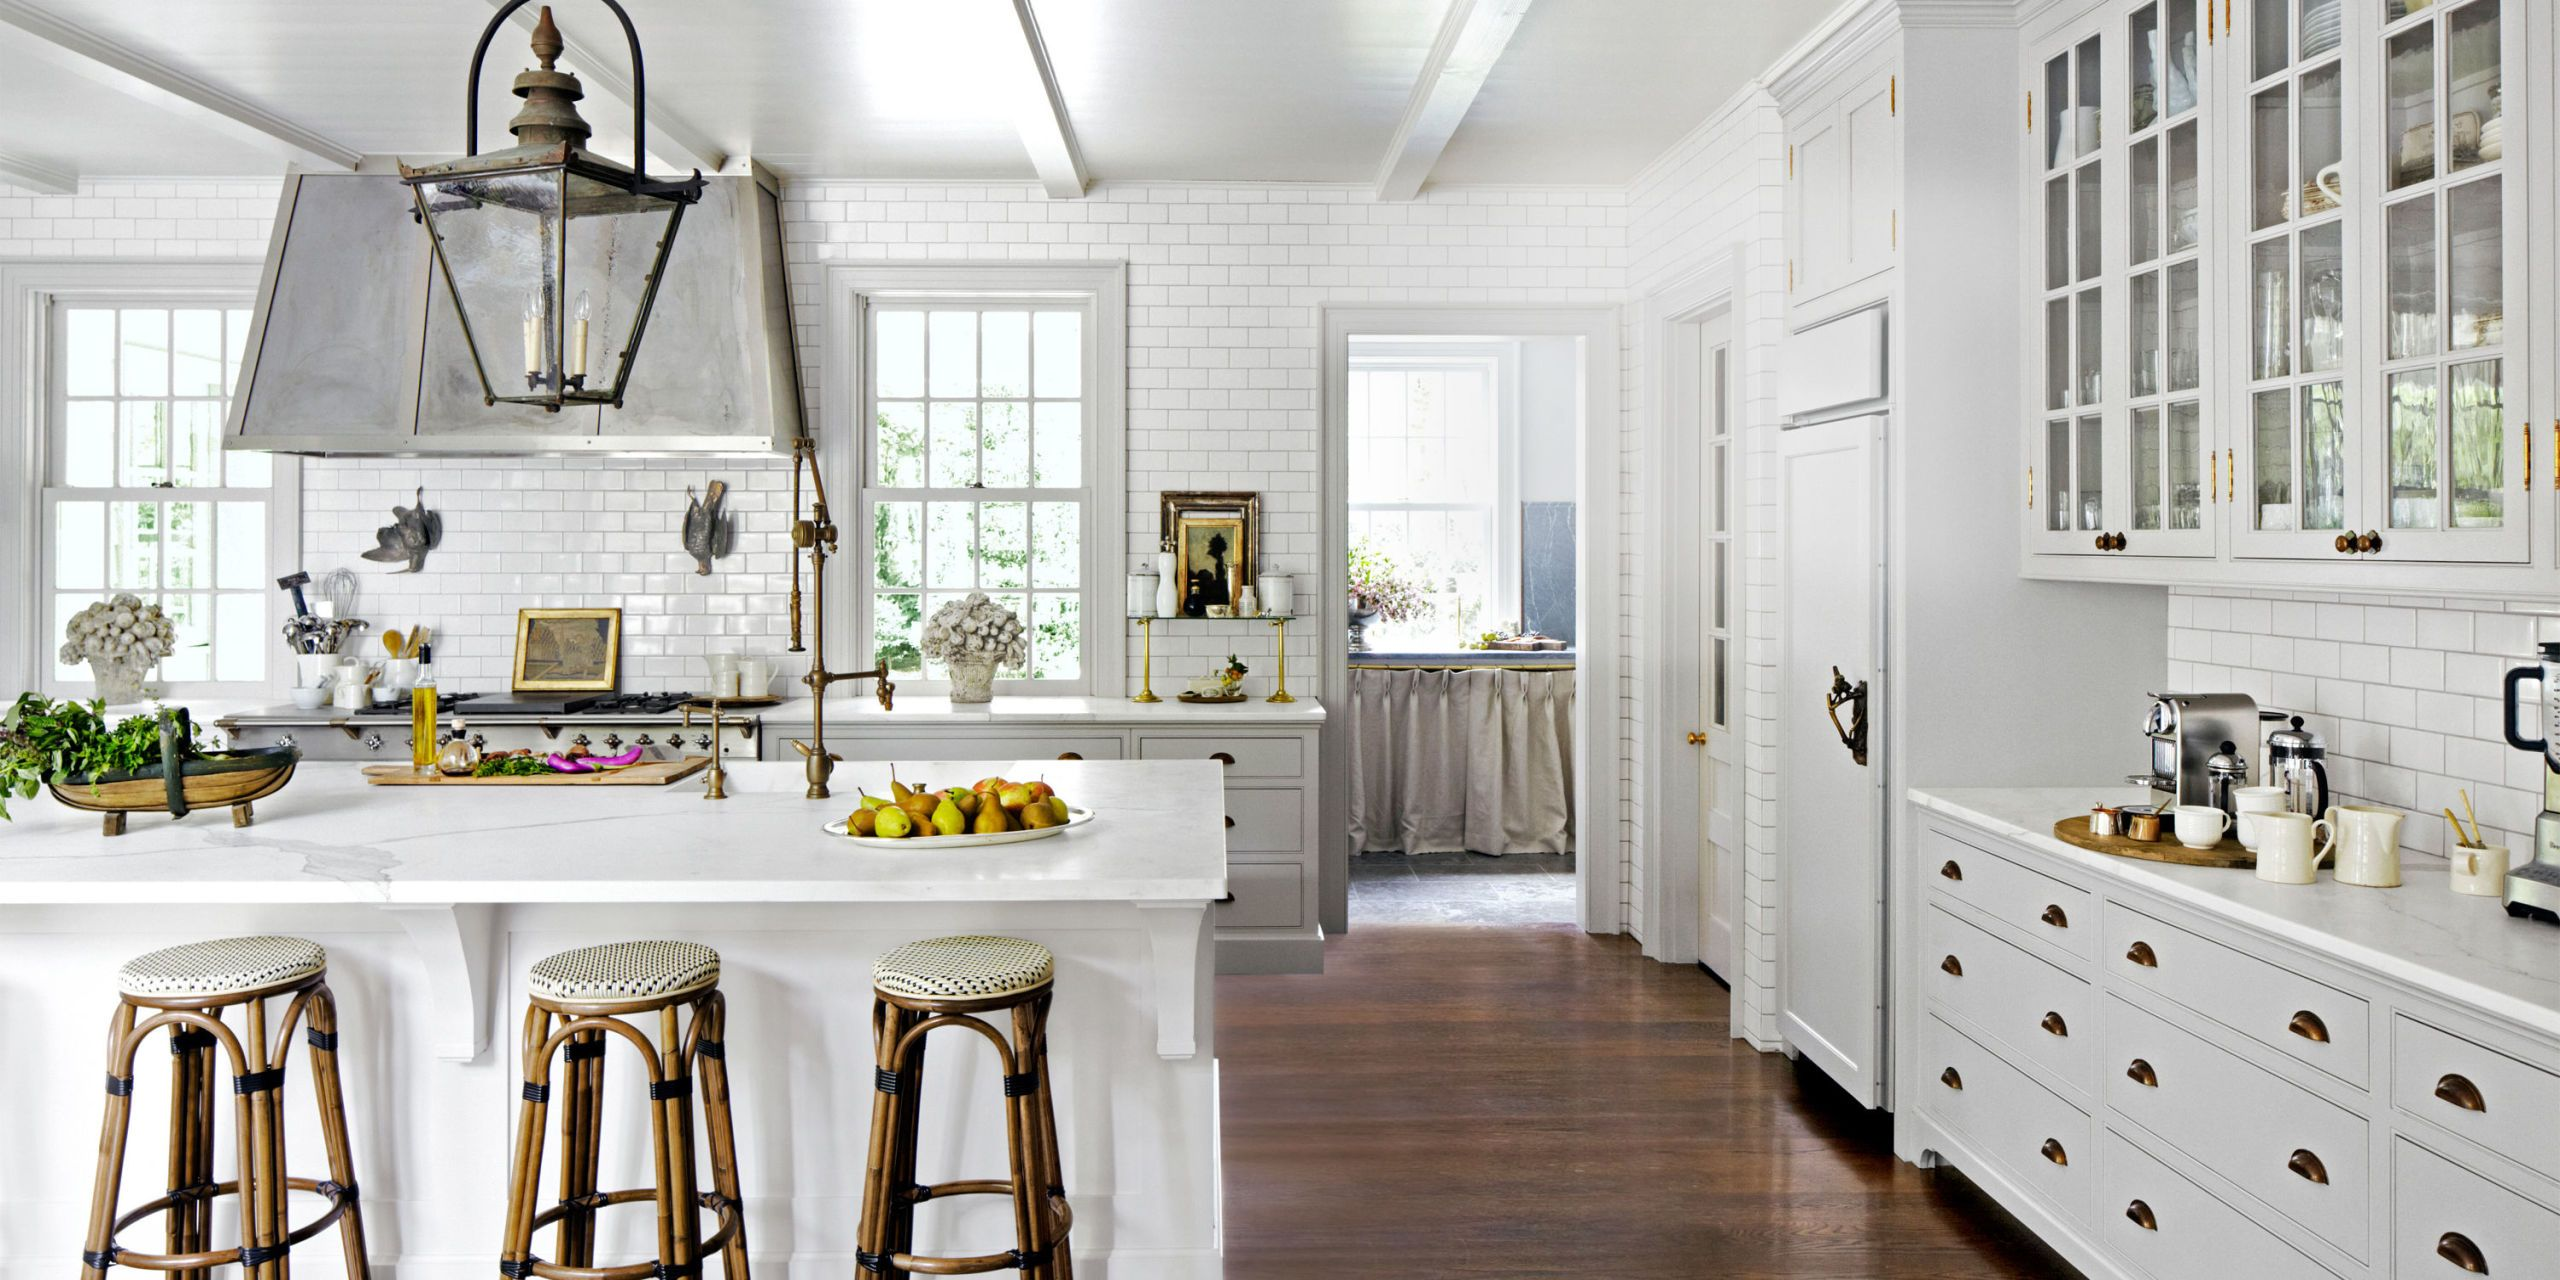 Marvelous Amazing Ideas For Using White To Spruce Up Your Kitchen Decor And Take It  From Drab To Dazzling.